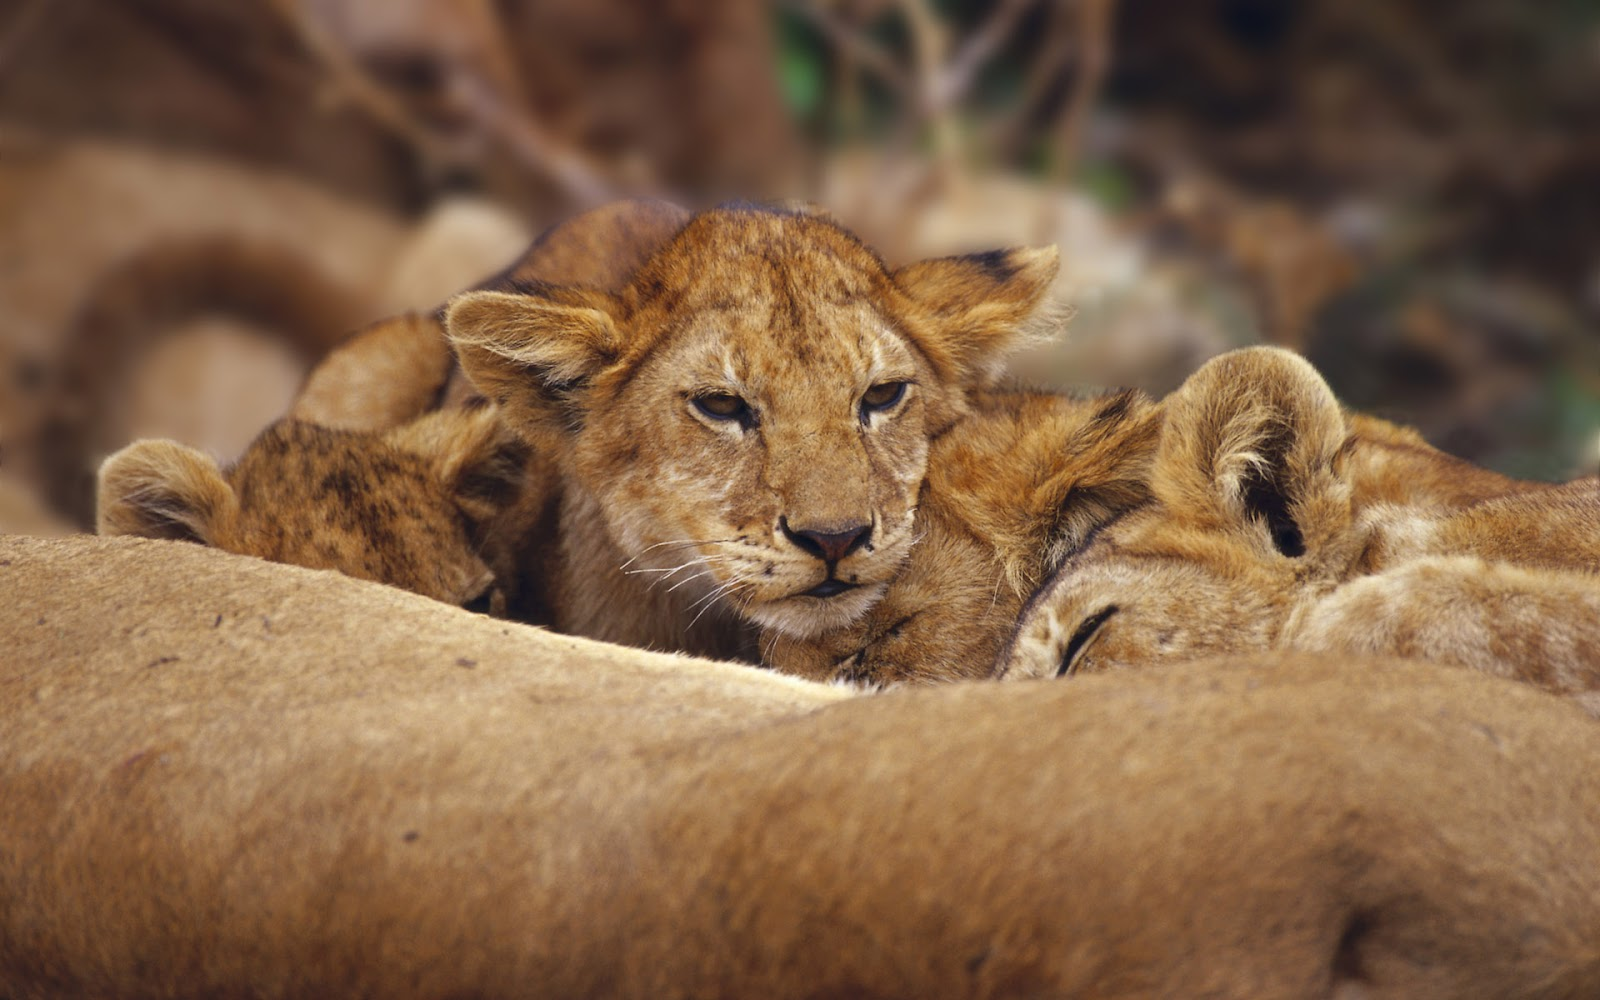 Cute Sleeping Baby Wallpapers Afrika Wilde Dieren Achtergronden Hd Wallpapers